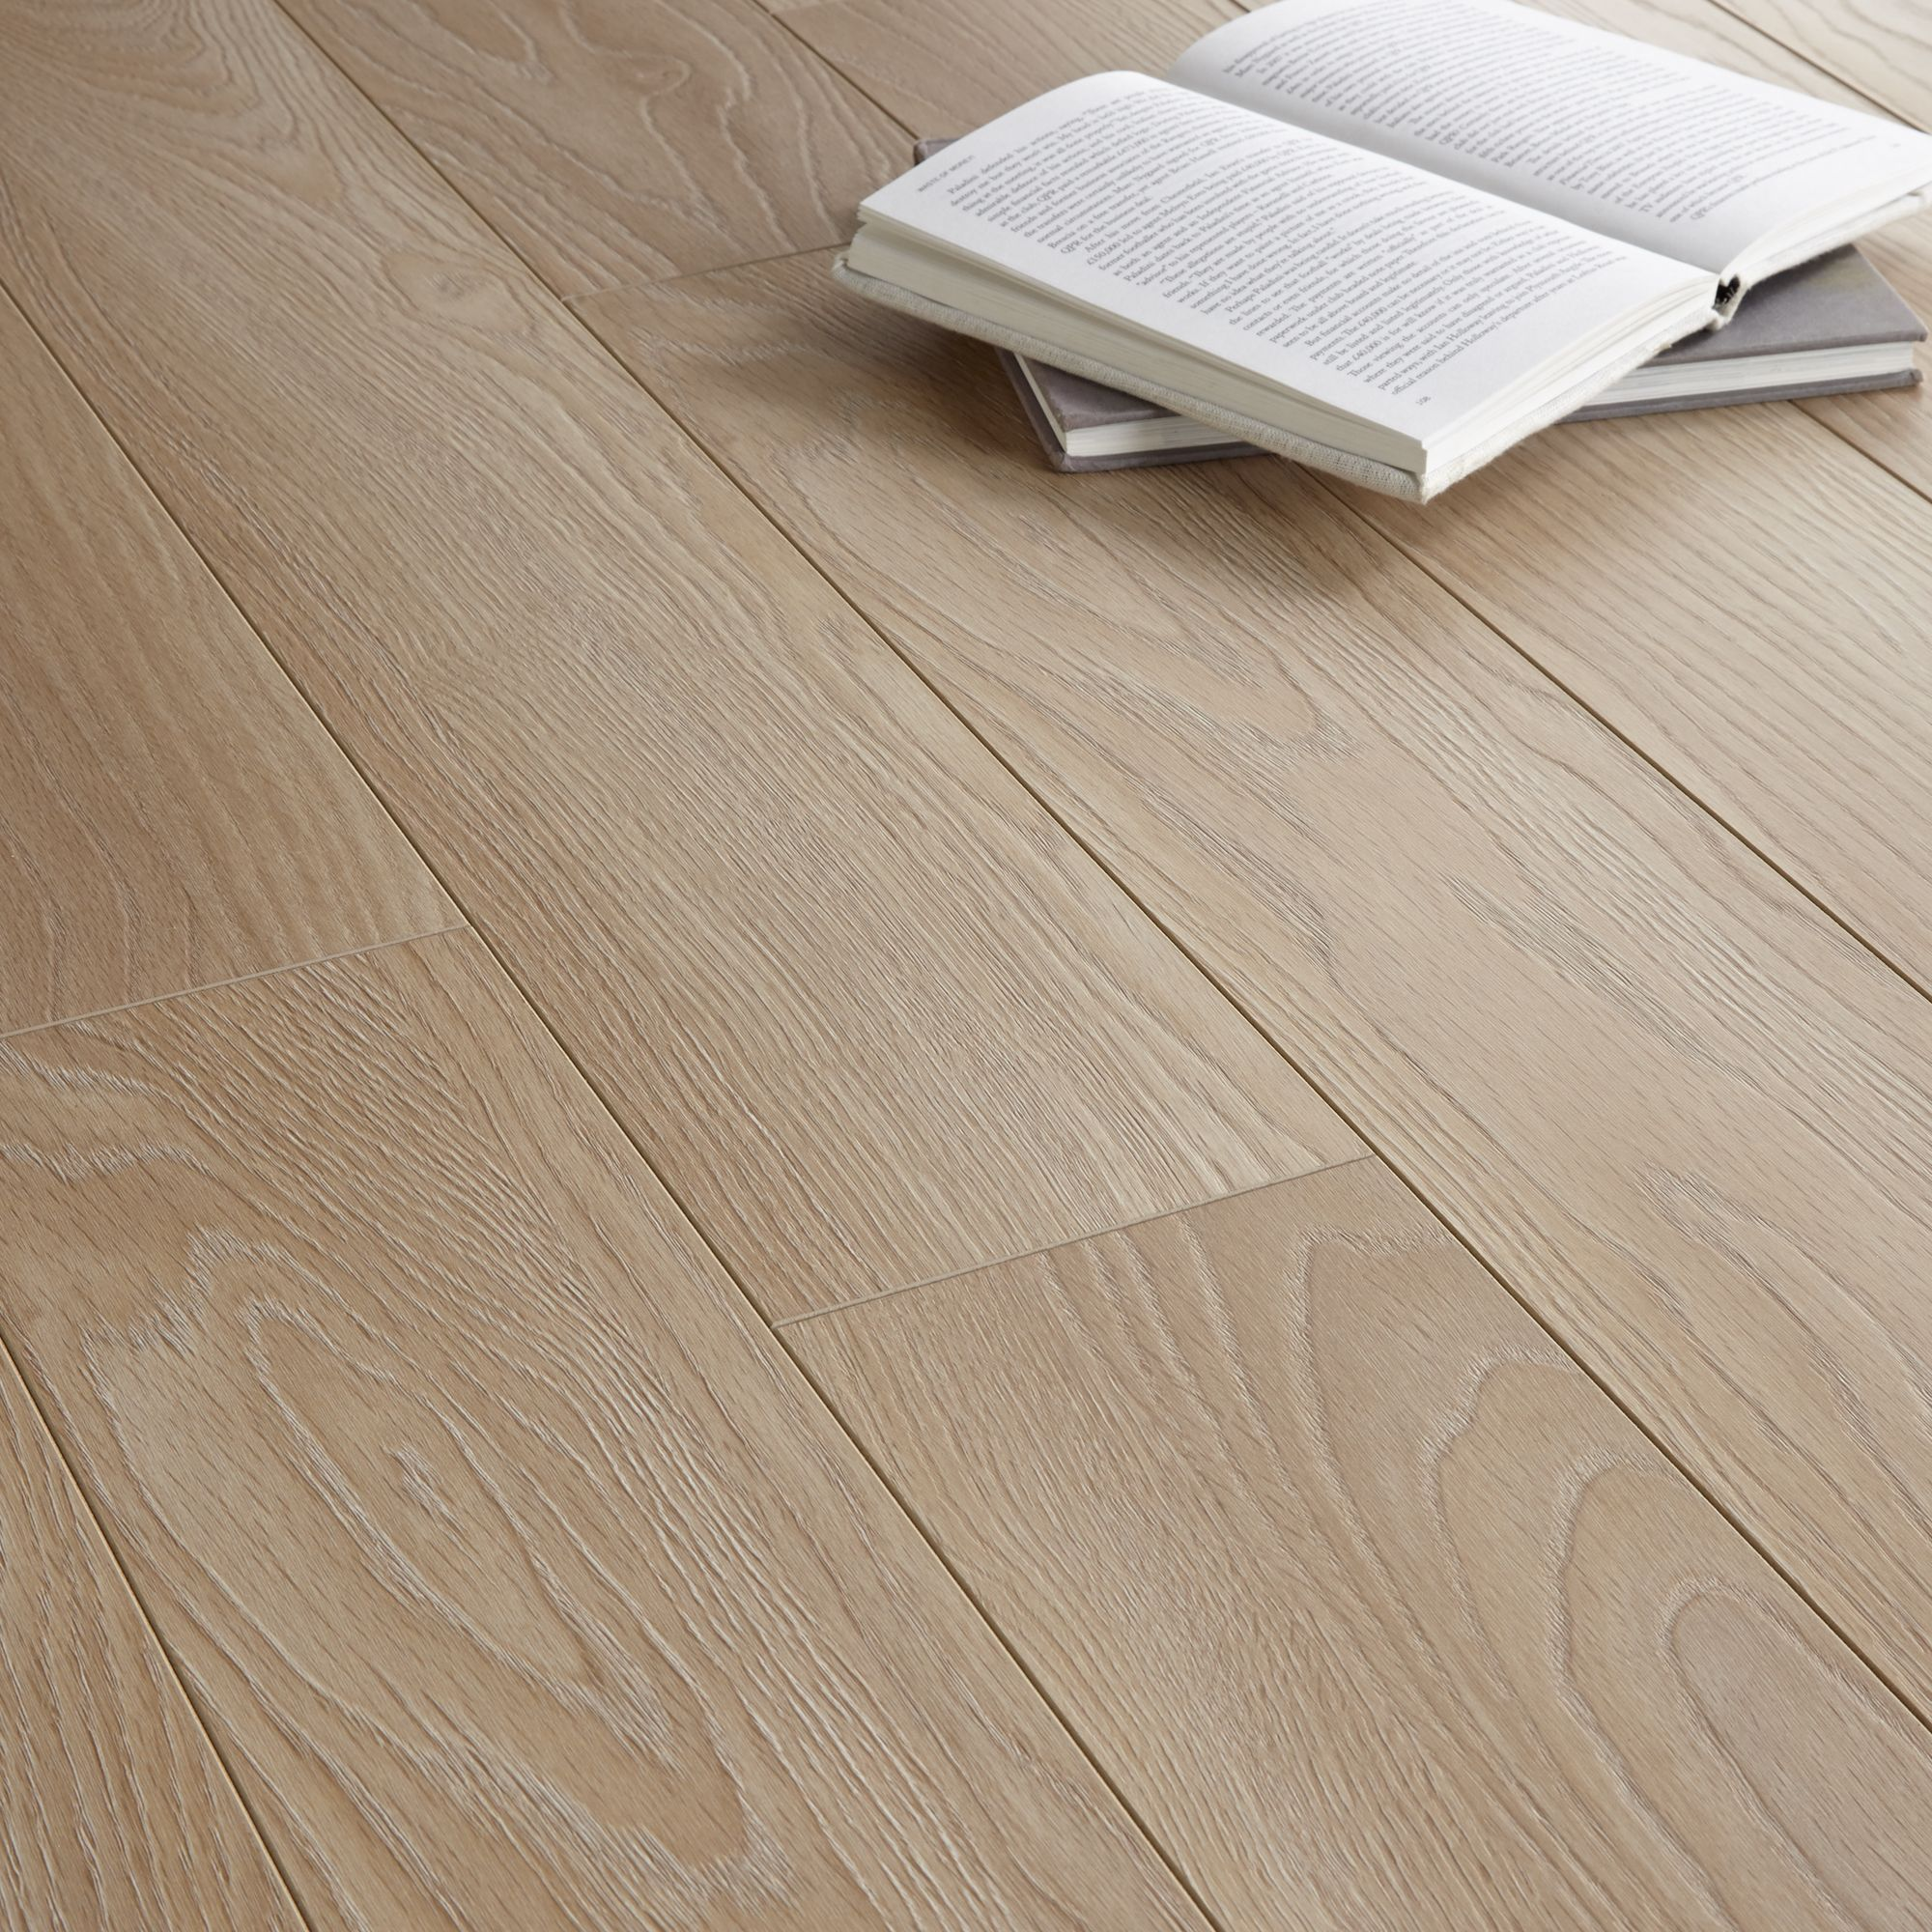 Toccata Natural Cardiff Oak Effect Laminate Flooring 1 65 M² Pack Departments Diy At B Q